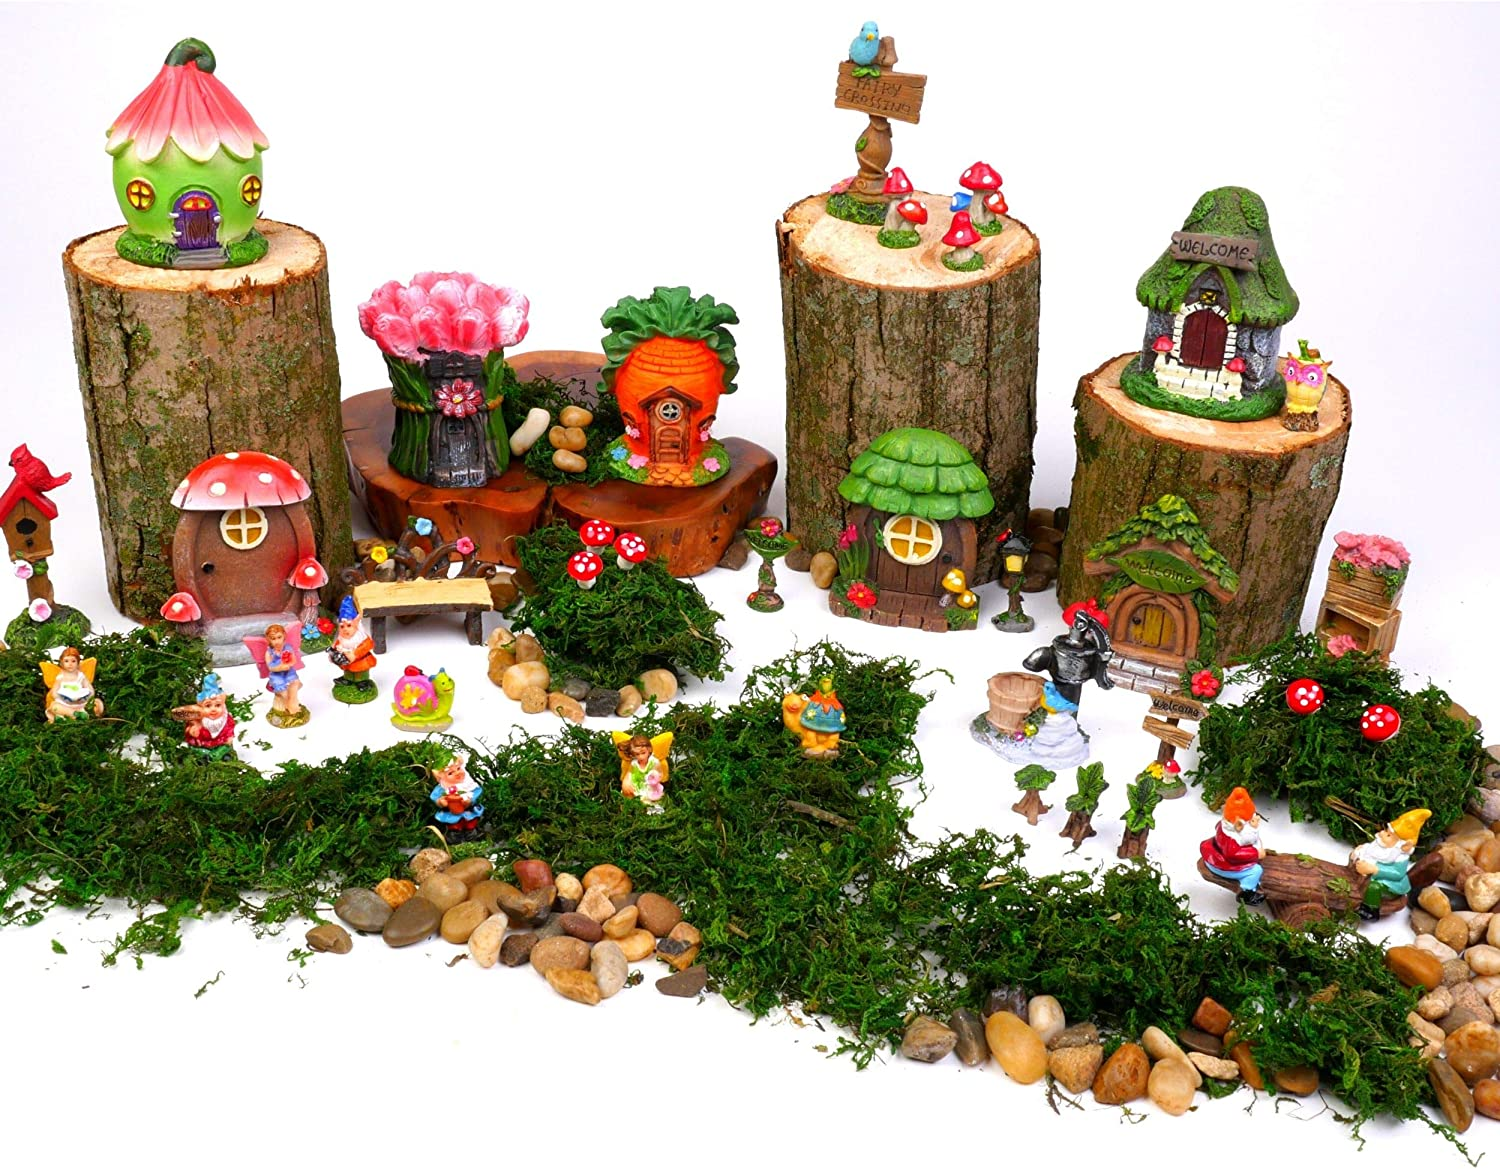 Mini Fairy Gardens Kit for Kids. Accessories & Supplies Are Moss, Houses, Fairies, Gnomes, Animals, Table & Chairs plus much more! Fun for Girls, Boys, Adults. 37 pc set Miniatures for indoor outdoor